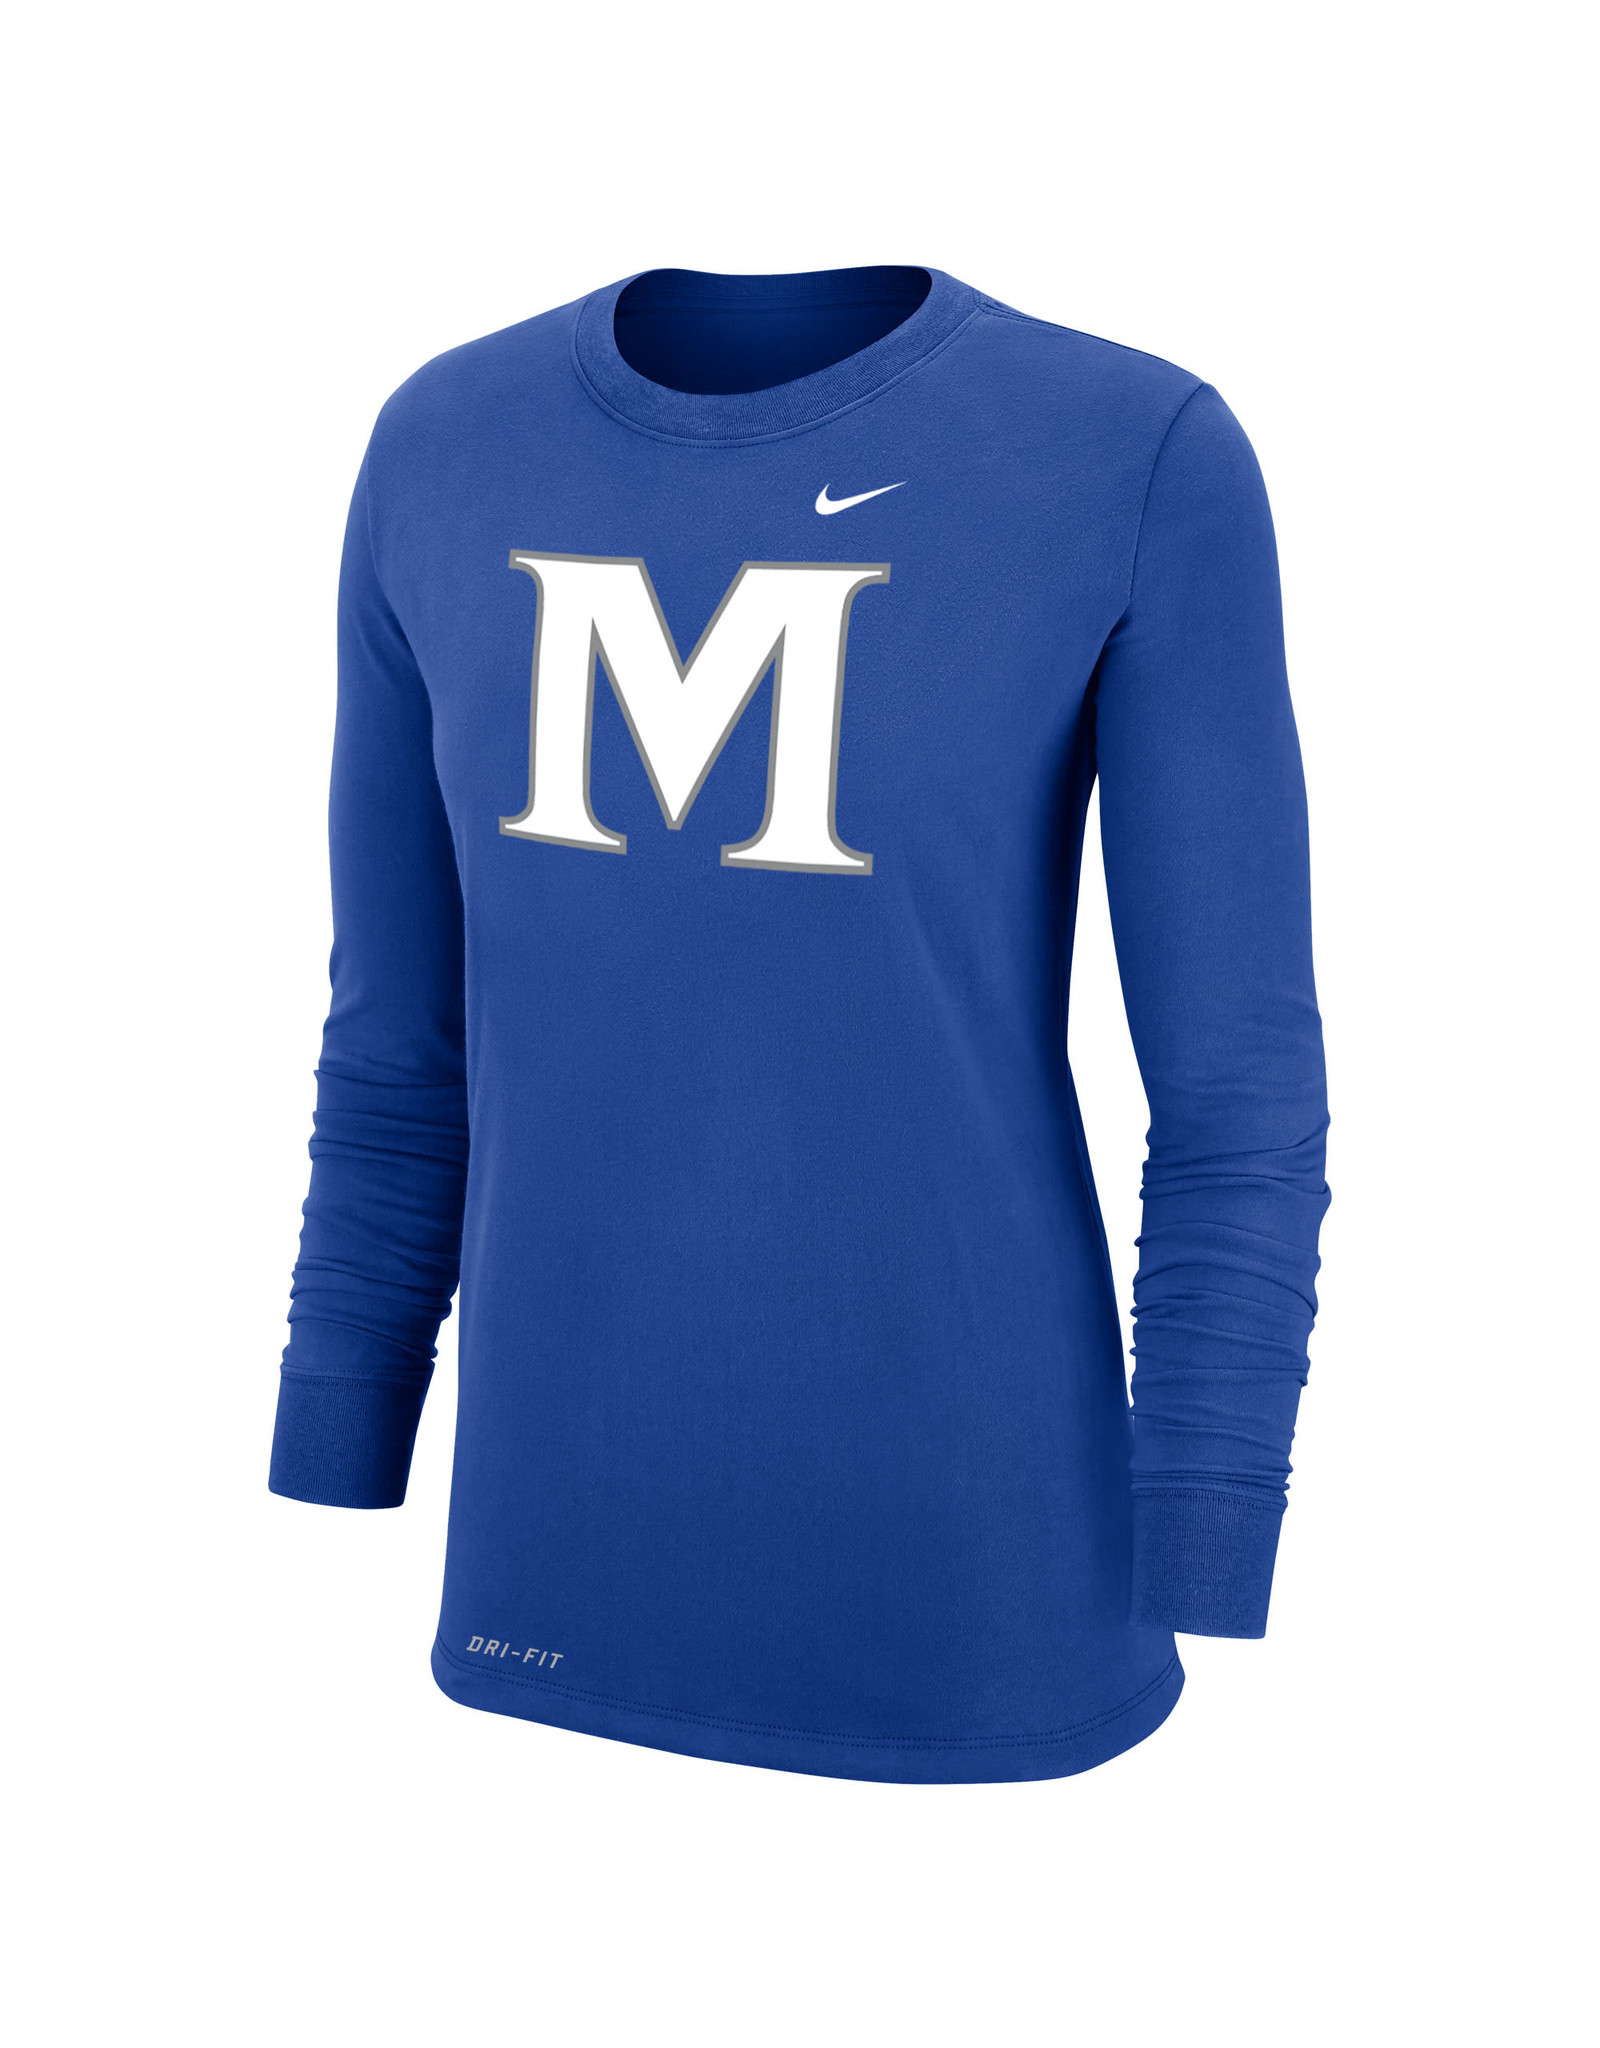 WOMEN'S NIKE COTTON LS SHIRT